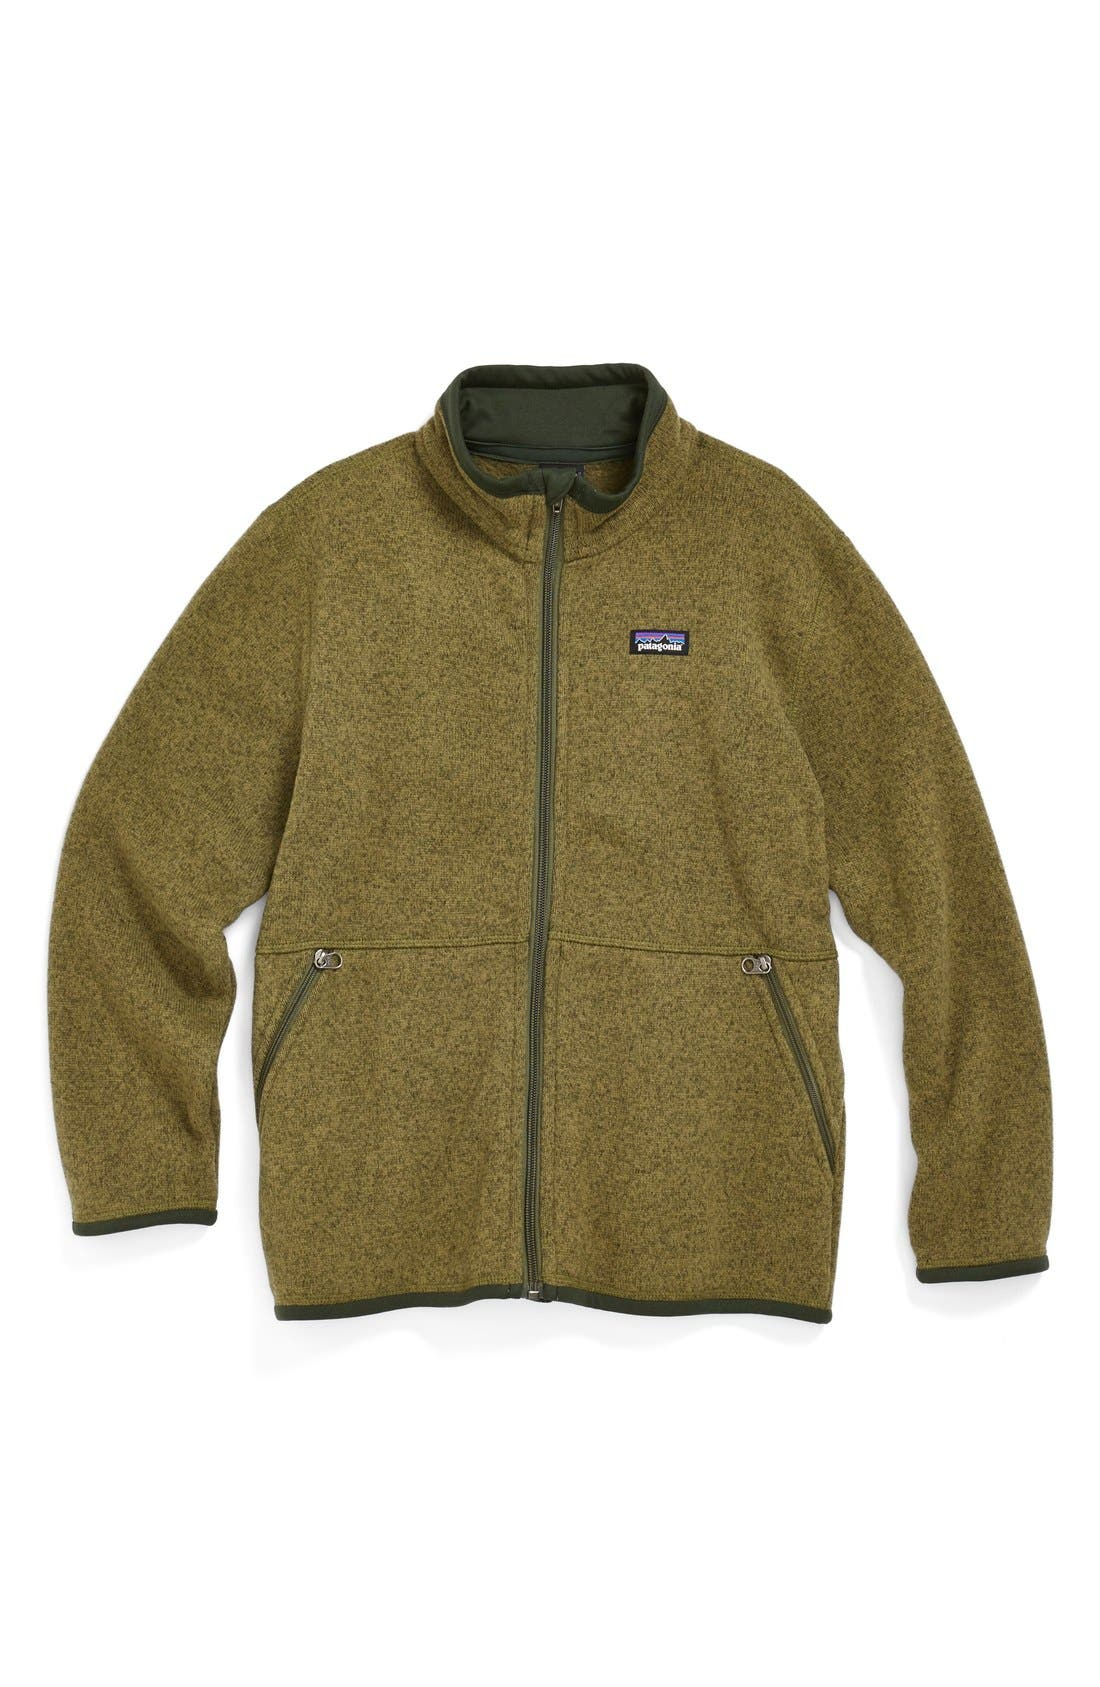 Alternate Image 1 Selected - Patagonia 'Better Sweater®' Jacket (Little Boys & Big Boys)